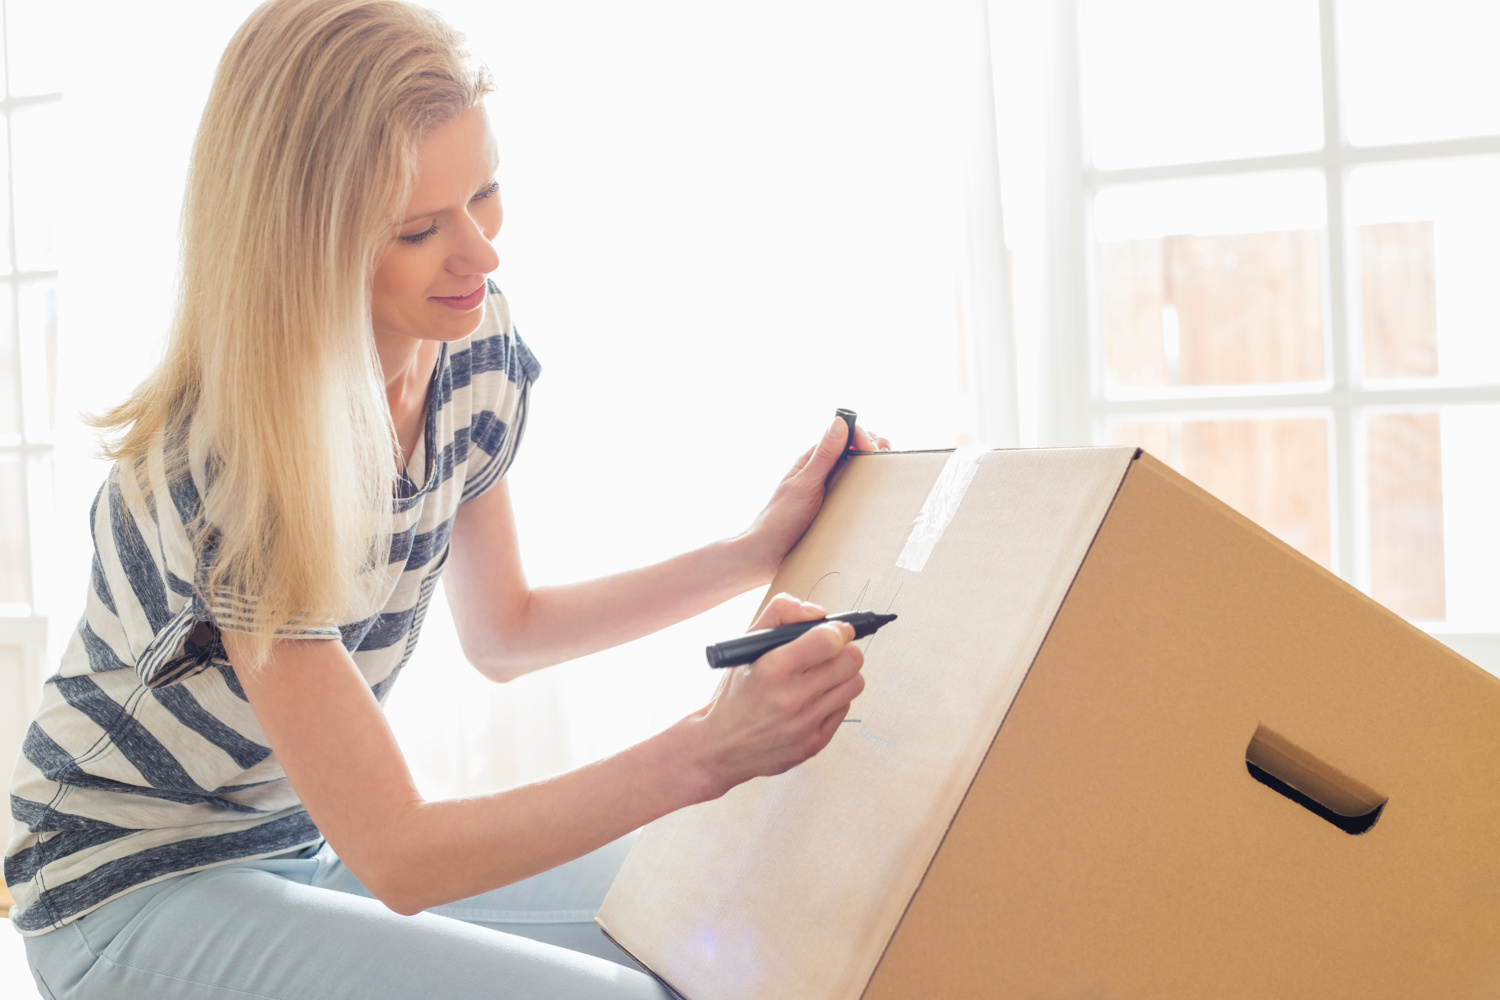 woman labeling a box. Easy decluttering tips you can do to test drive decluttering.